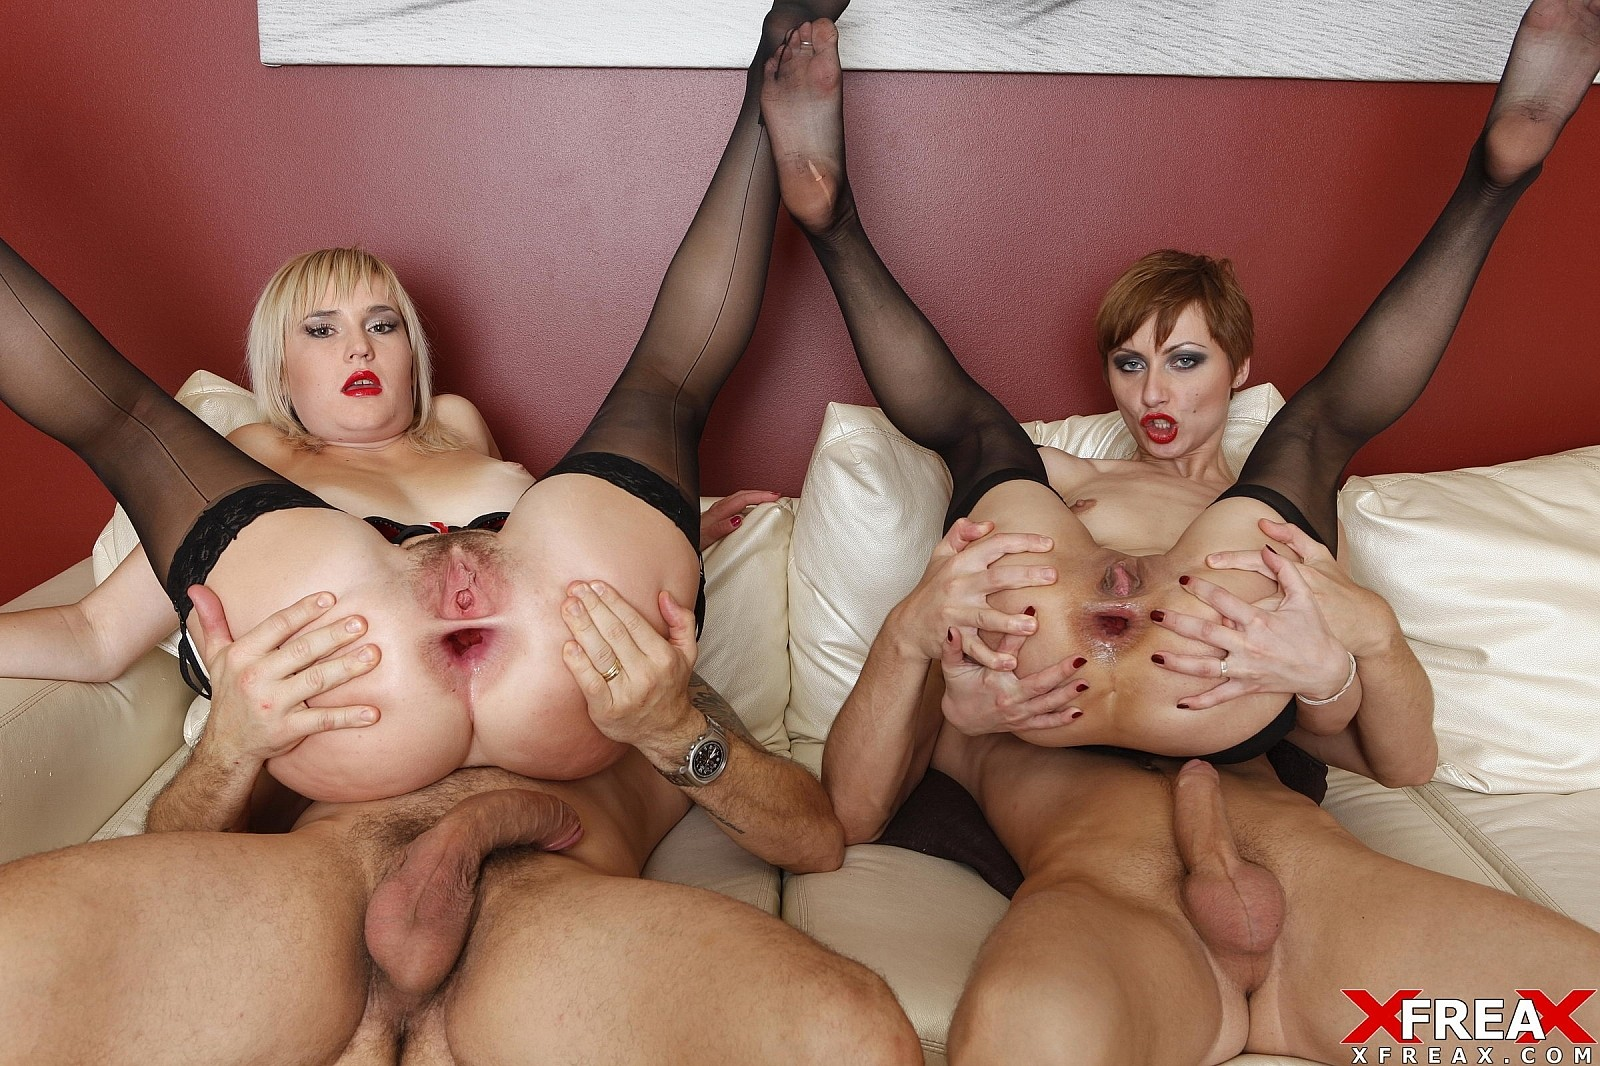 Anal Dilatation Porn Tube Free double anal foursome hd - free sex pics, best porn images